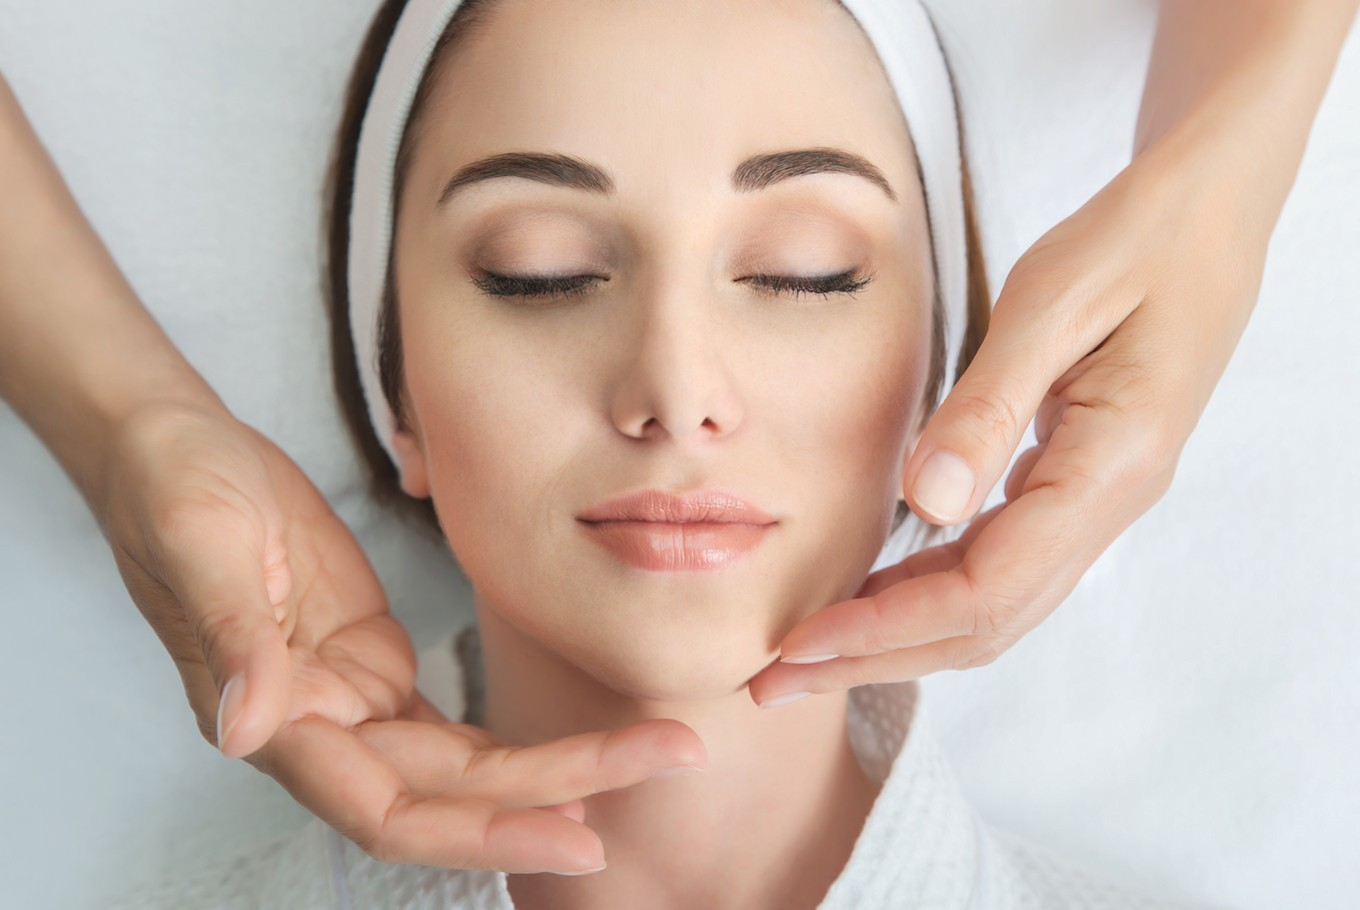 How to get rid of your wrinkles